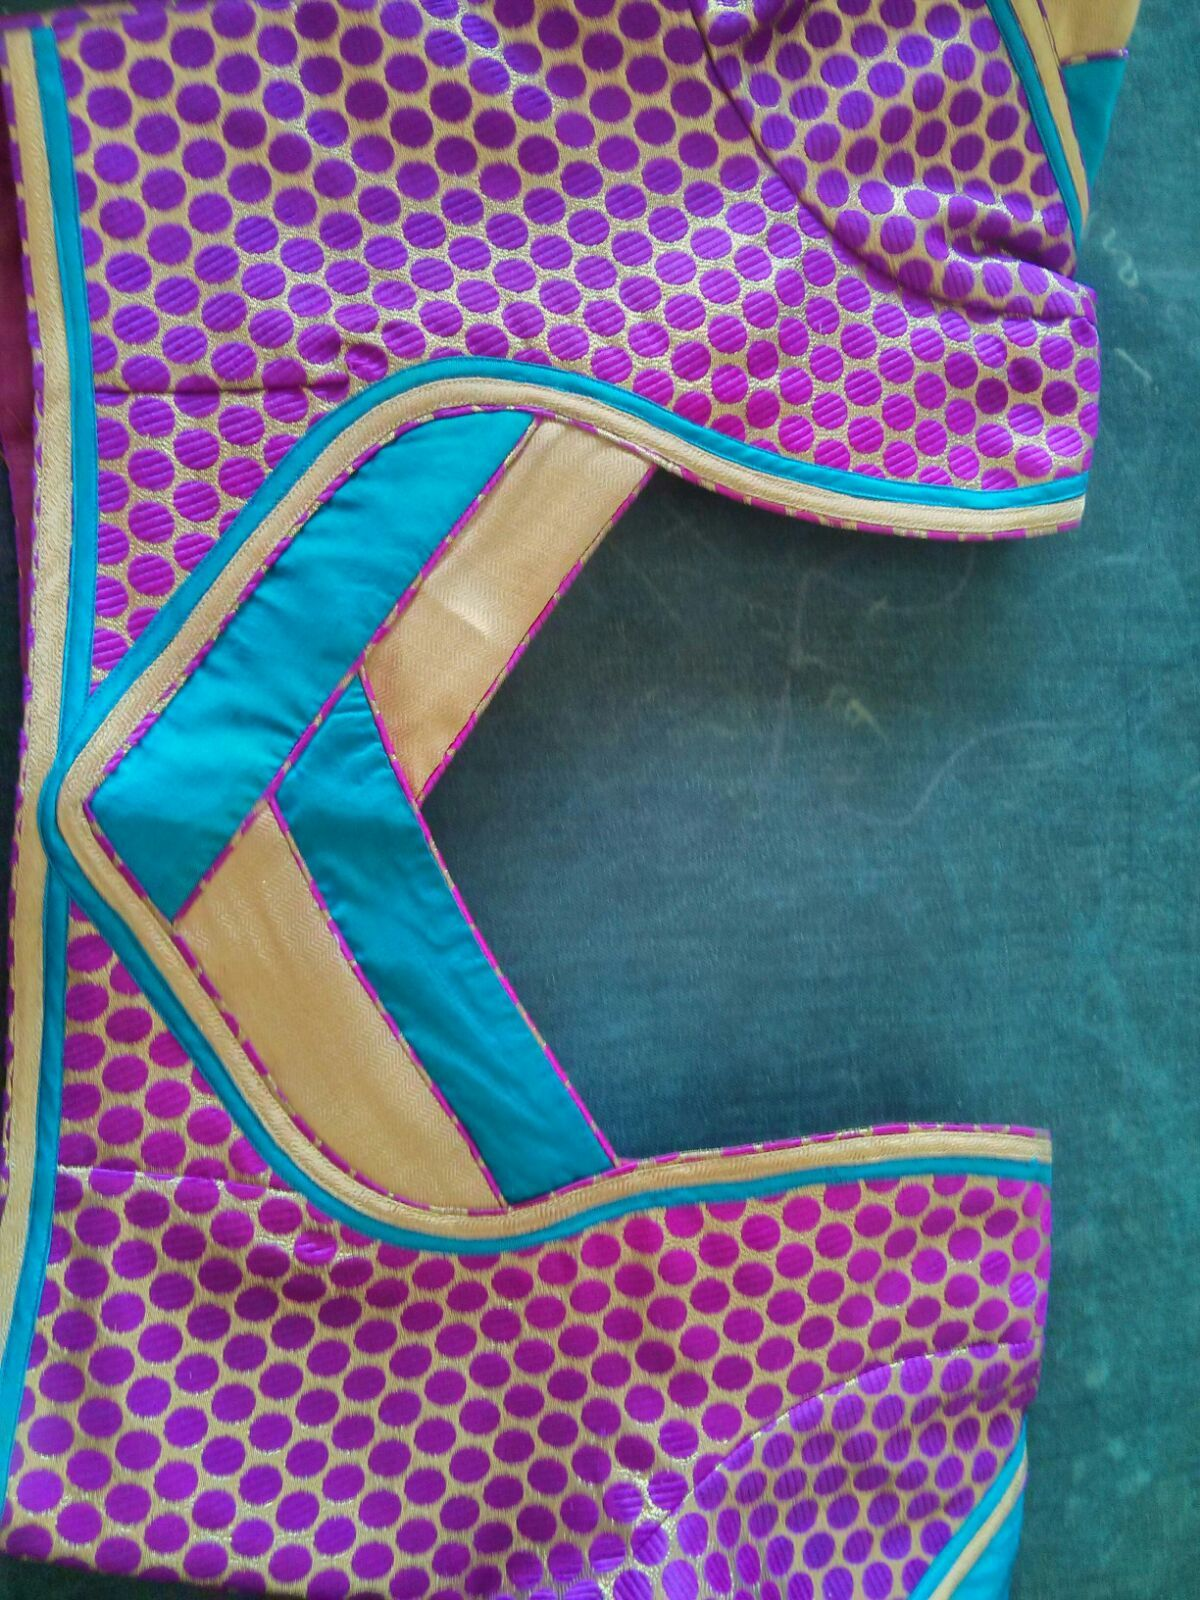 Pin By Amudha Shanmugam On Sequence Border Saree Blouse Design Models Fashion Blouse Design New Blouse Designs